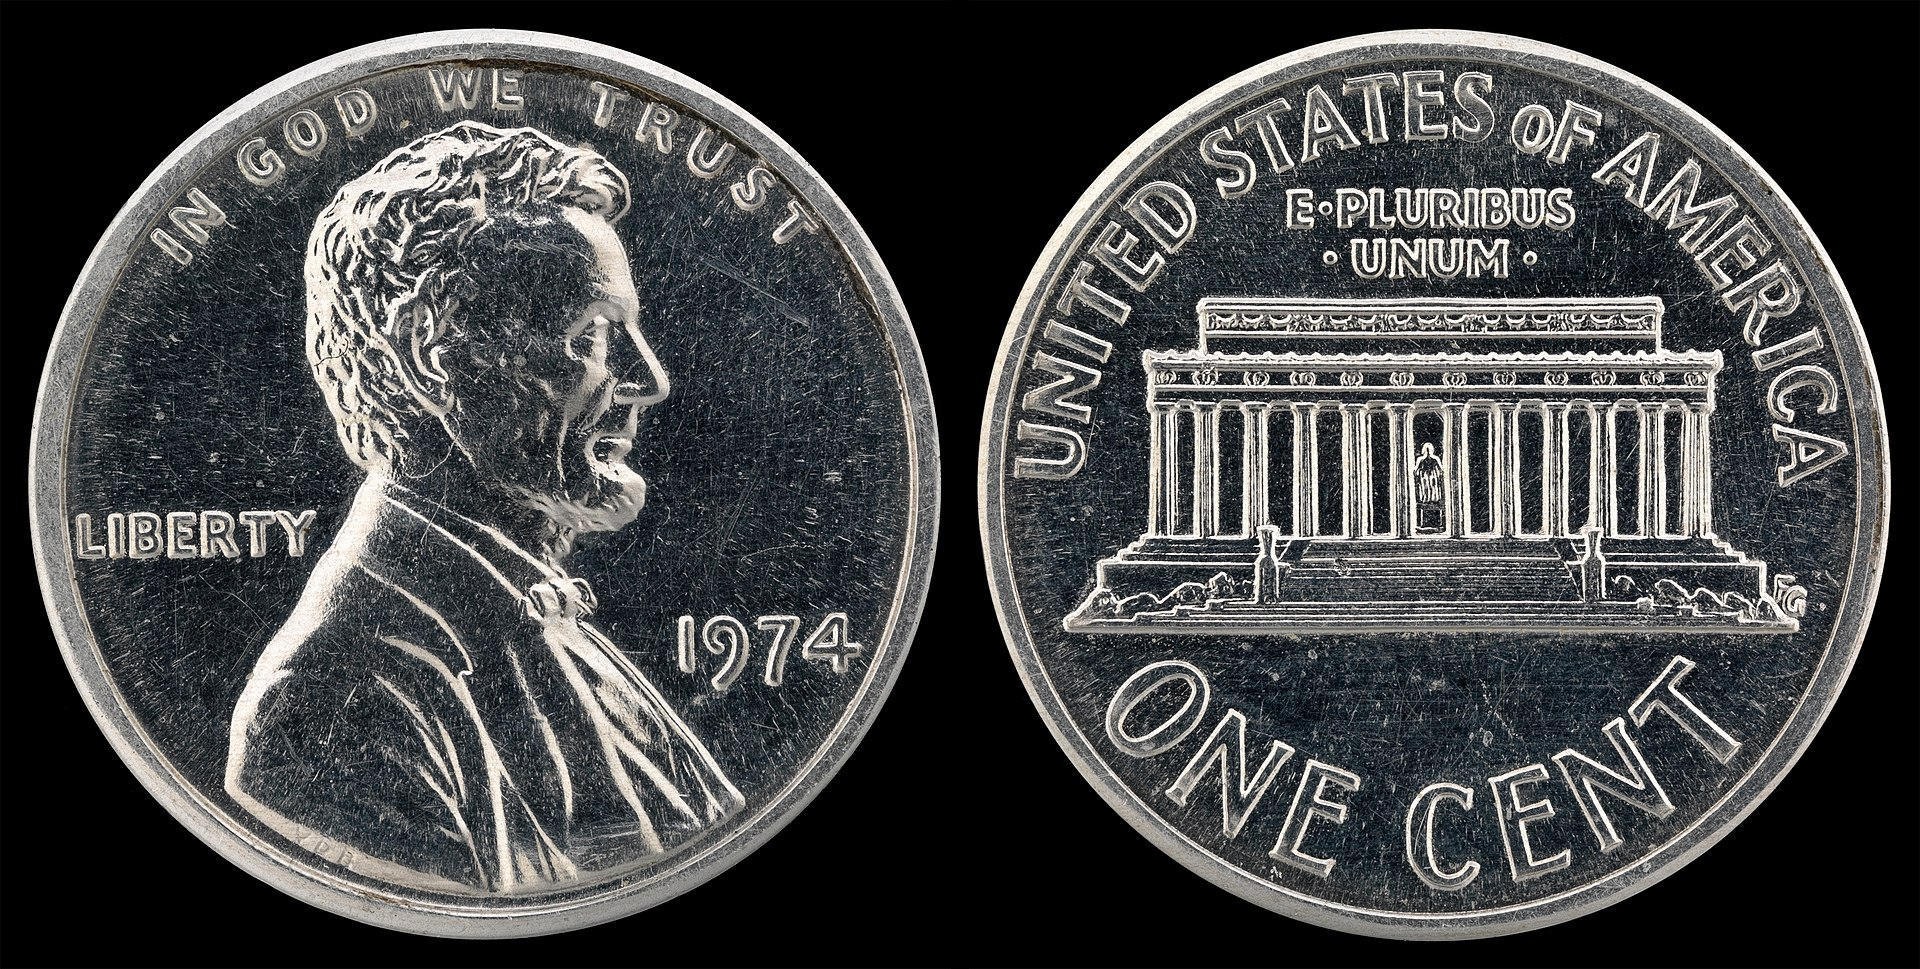 1974 Aluminum Cent Wikipedia